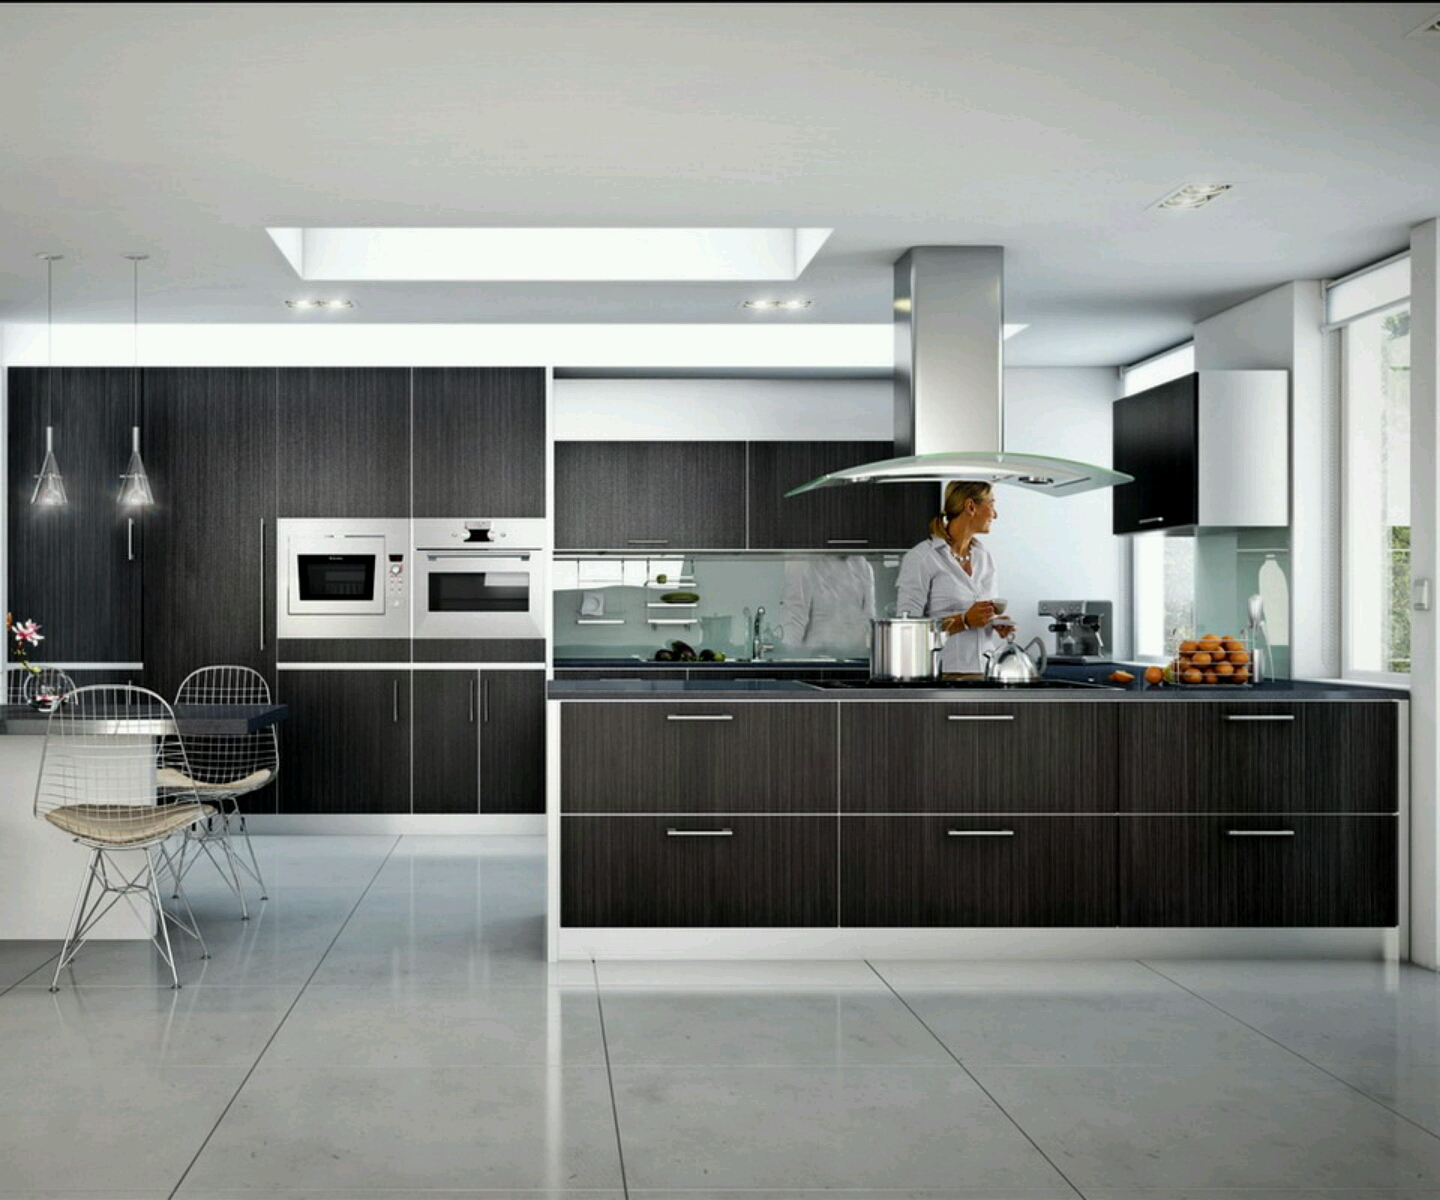 Pictures Of Modern Kitchens: Tips Of Designing Nice And Simple Modern Kitchens